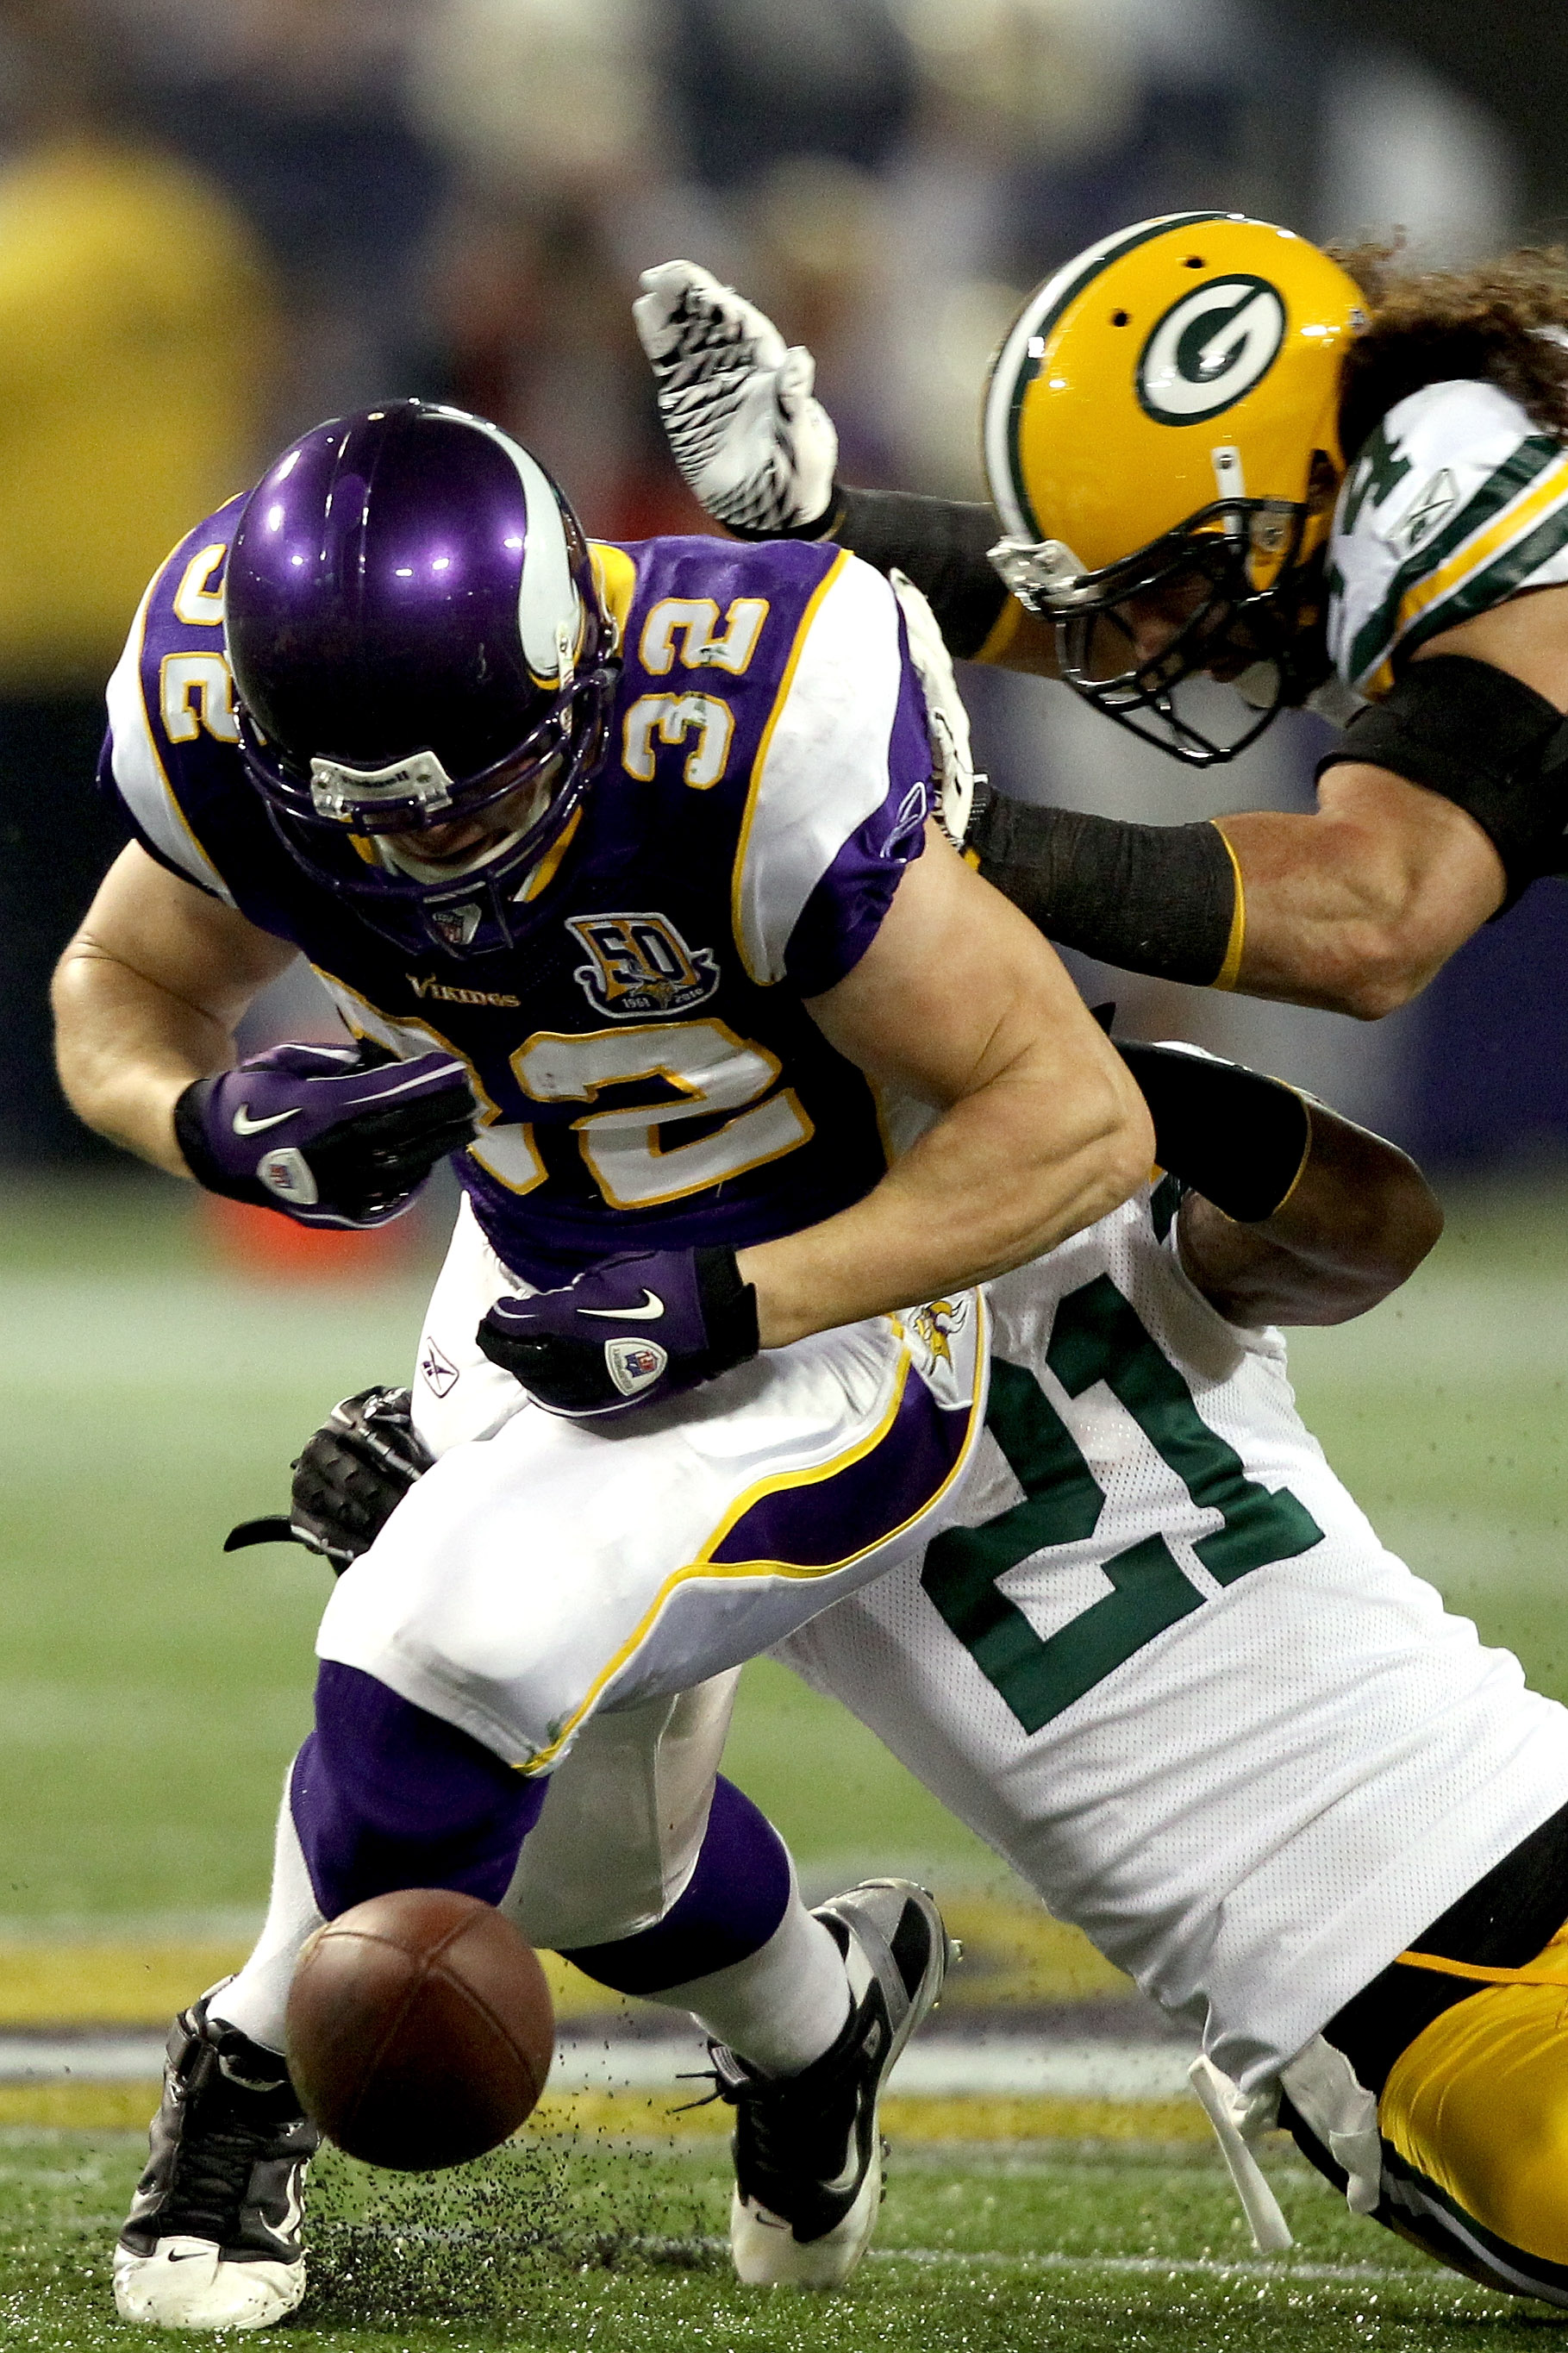 MINNEAPOLIS - NOVEMBER 21:  Toby Gerhart #32 of the Minnesota Vikings has the ball jarred loose by Charles Woodson #21 and Brandon Chillar #54 of the Green Bay Packers at the Hubert H. Humphrey Metrodome on November 21, 2010 in Minneapolis, Minnesota.  (P